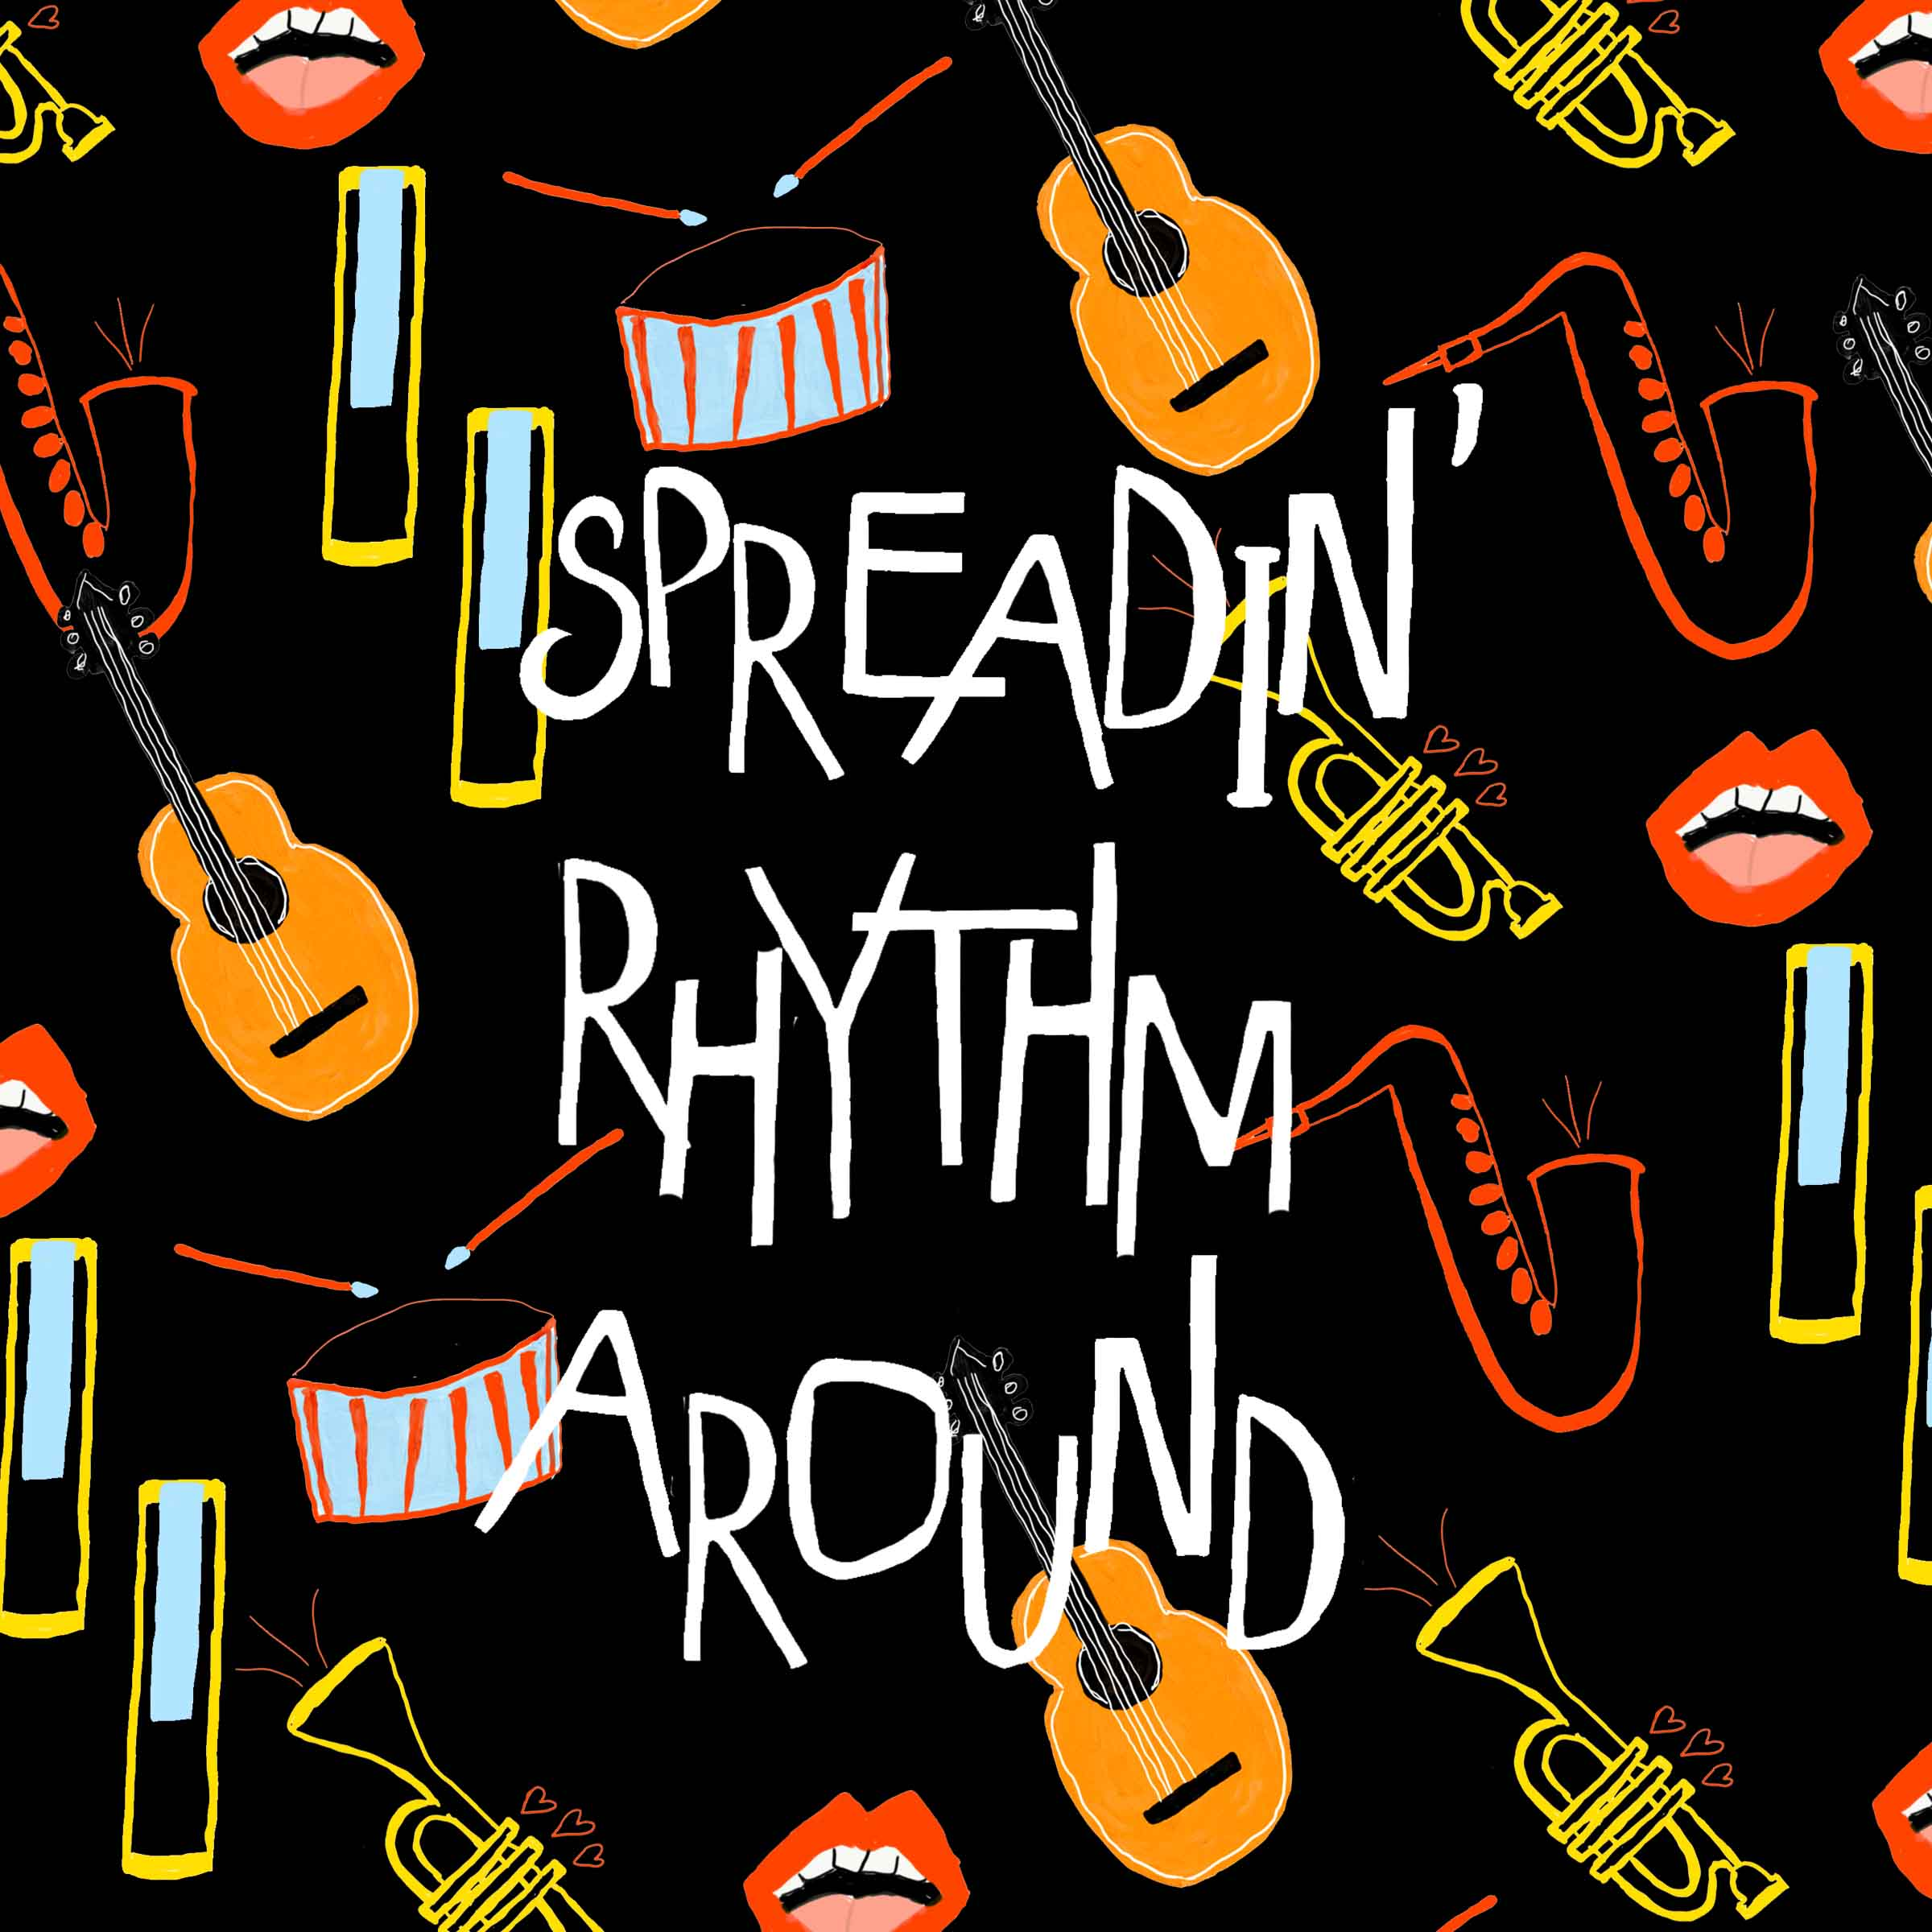 Spreadin' Rhythm Around feat. Wycliffe Gordon - 1. As Long As I Live (feat. Wycliffe Gordon)2. Pastrami on Rye3. Our Love is Here to Stay4. I Thought About You5. Too Close For Comfort6. Spreadin' Rhythm Around (feat. Wycliffe Gordon)7. Willow Weep For Me8. Illinois Jacquet Flies Again9. Mean To Me10. Mind Your Business